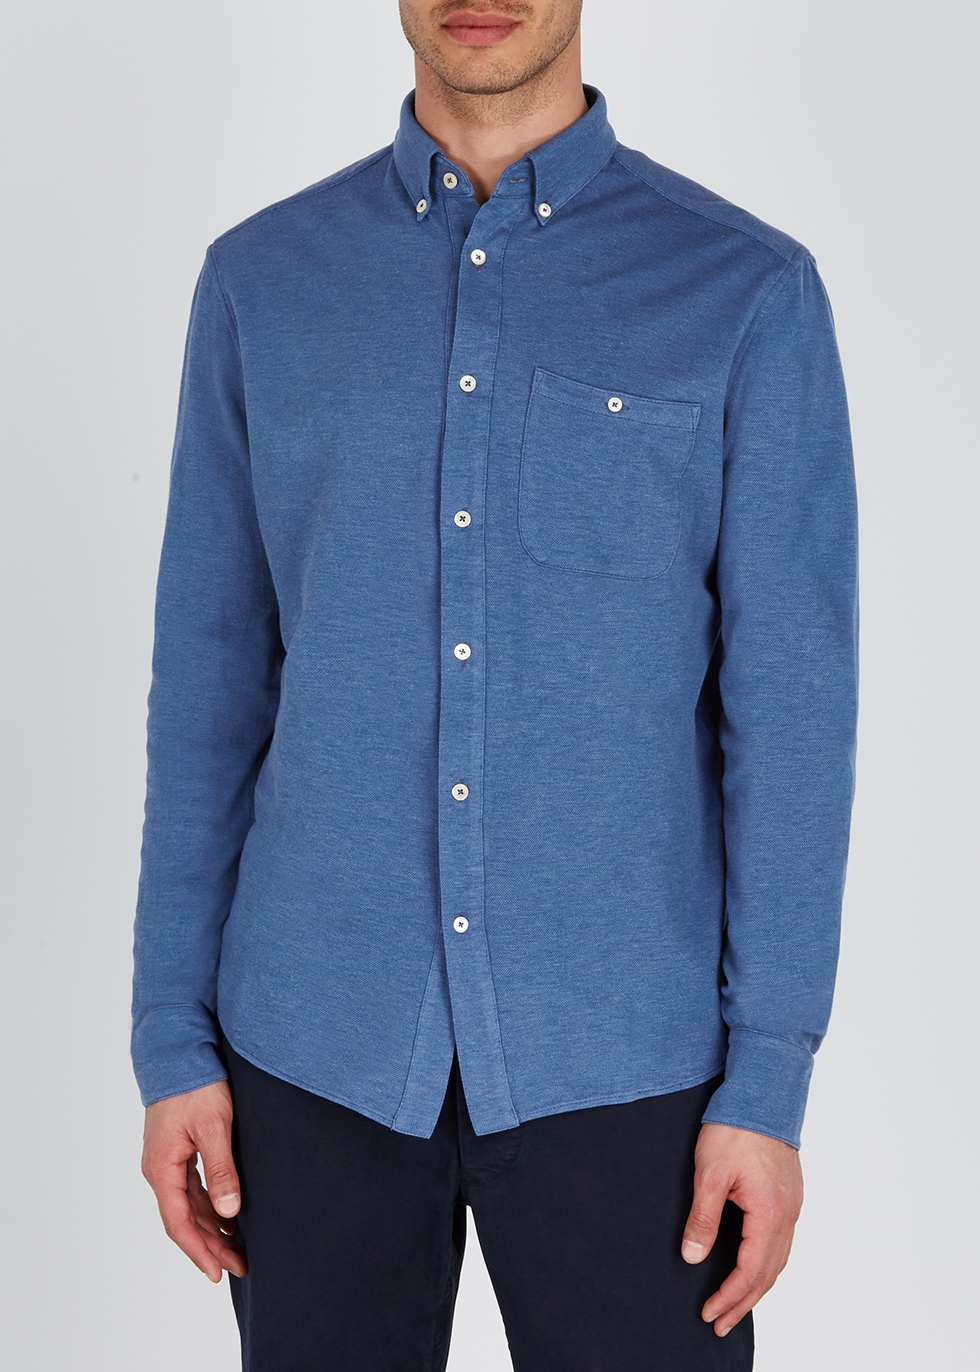 Blue cotton piqué polo shirt - A Kind of Guise